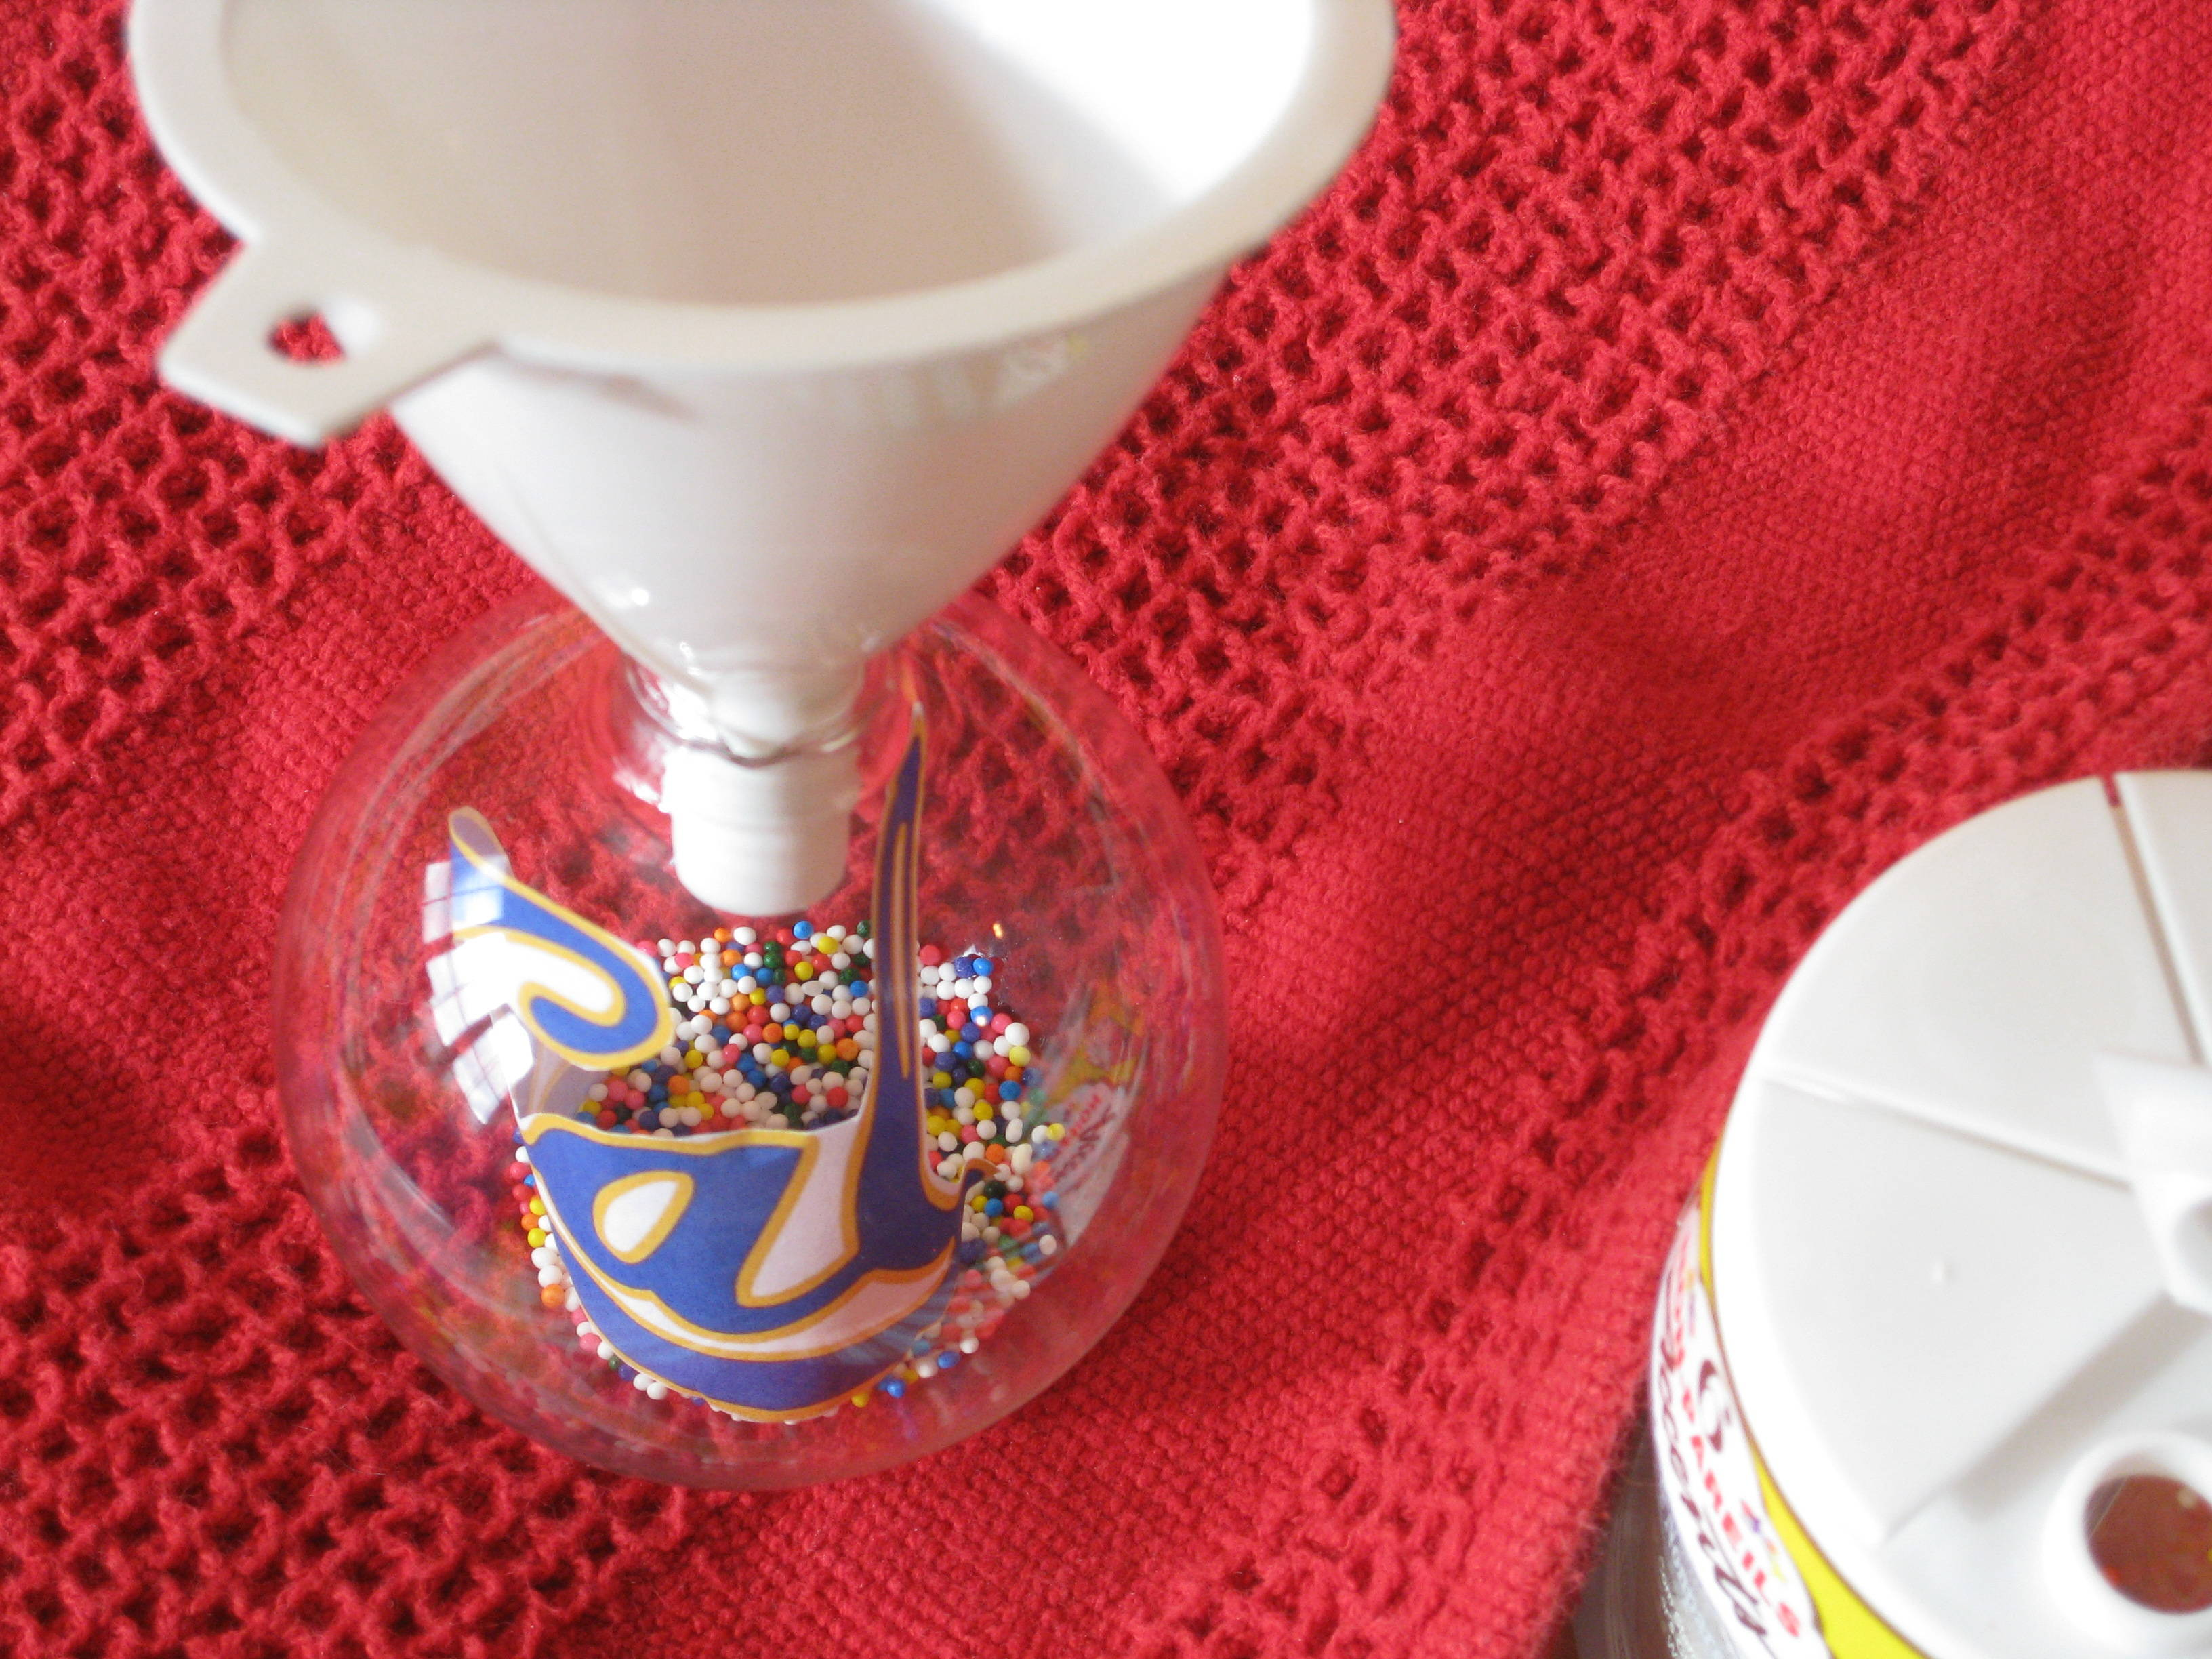 Glass xmas ornaments -  Surprise Someone This Christmas With Handmade Ornament Gifts These Are Frugal And Easy To Make